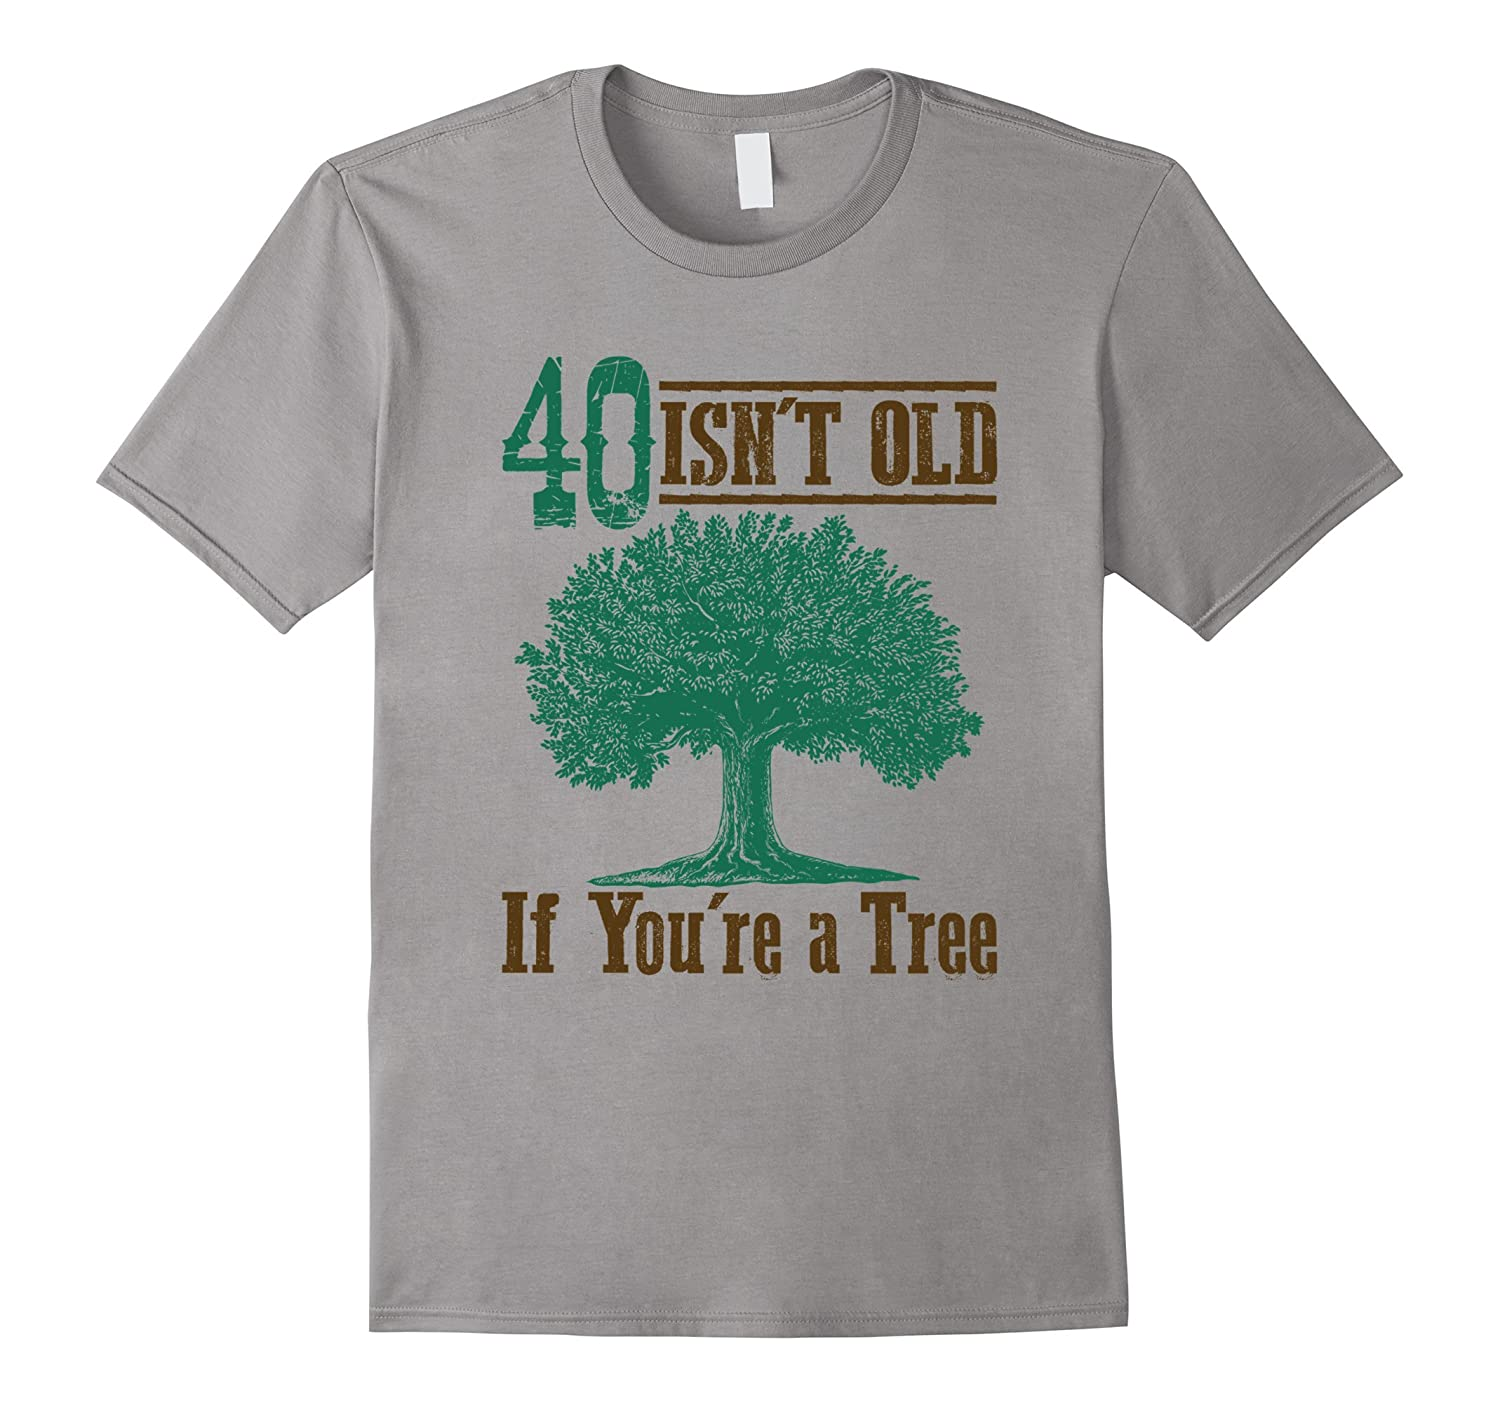 40 Isn't Old (If You're a Tree) - Funny 40th Birthday Tee-Rose